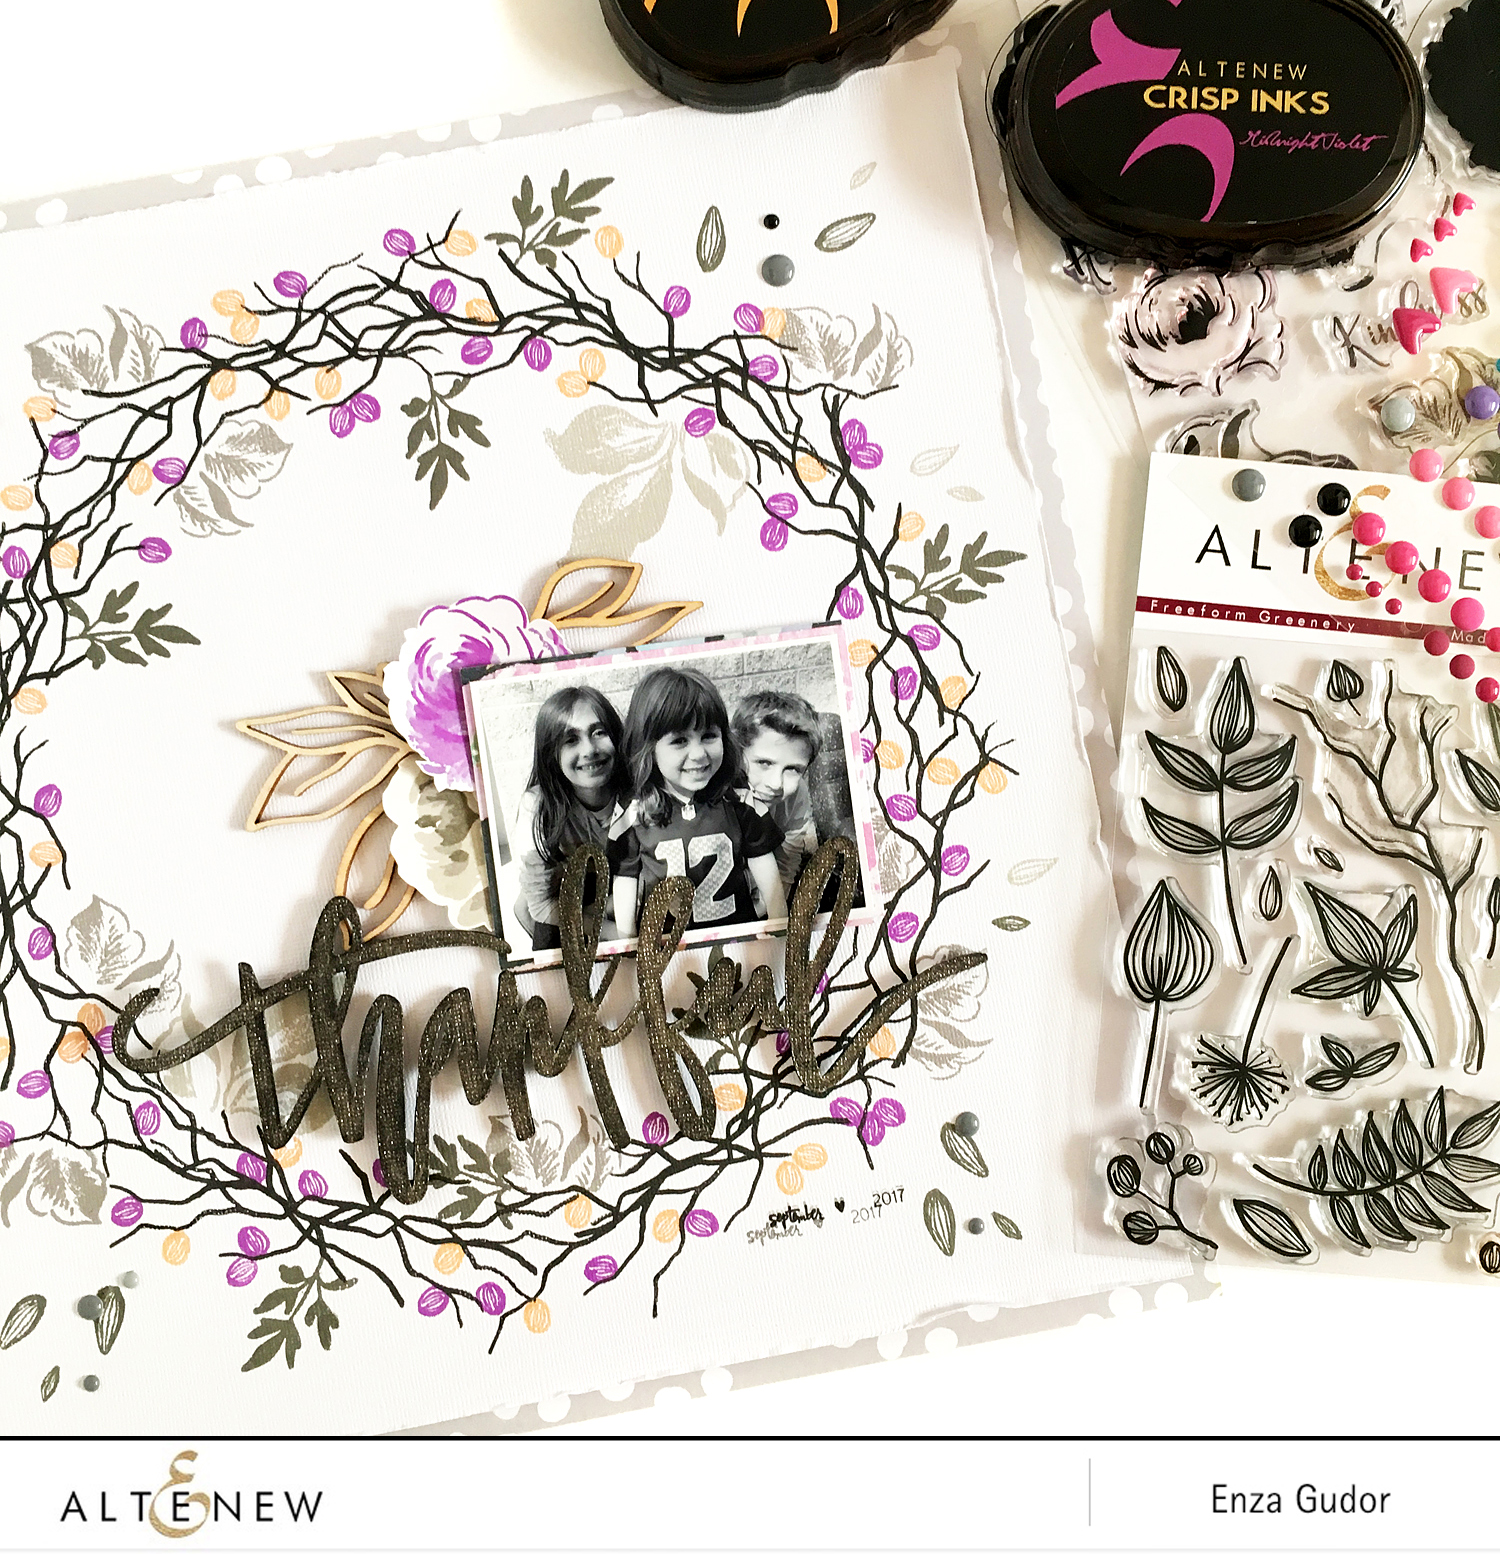 Creating your own design with stamps @Altenew @enzamg #AltenewStamps #Stamping